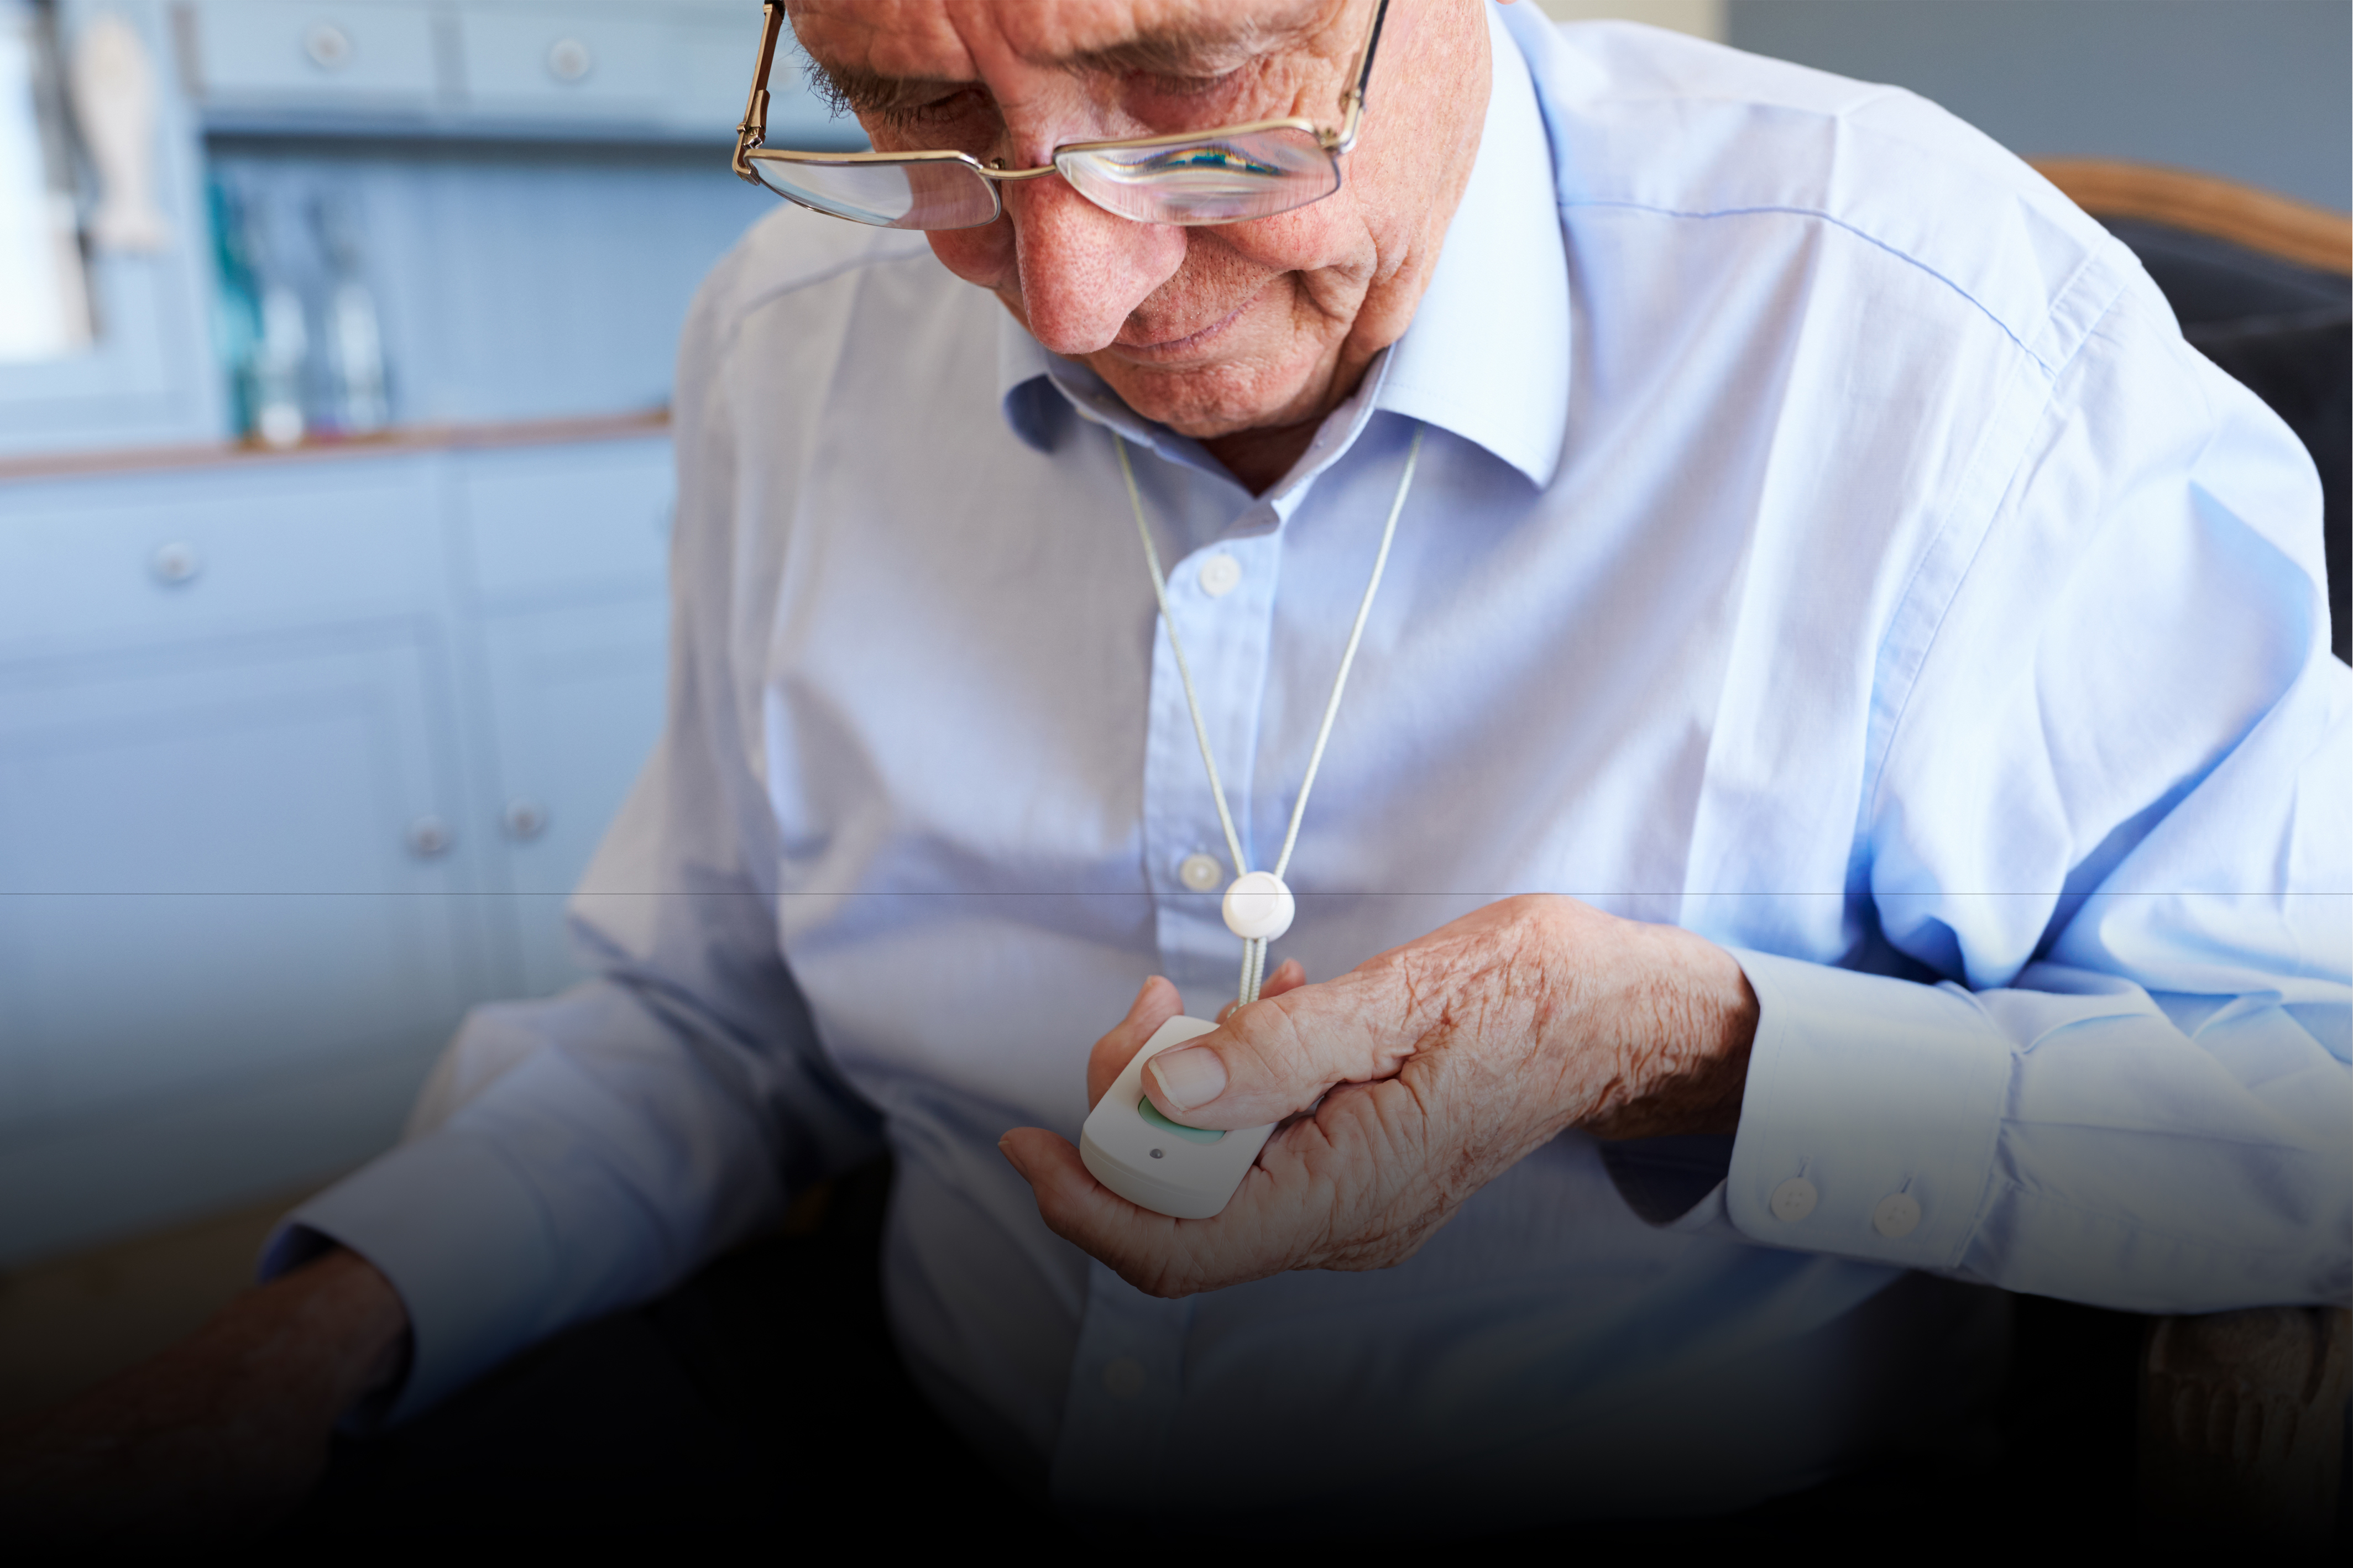 5 Innovative Safety Gadgets for Seniors